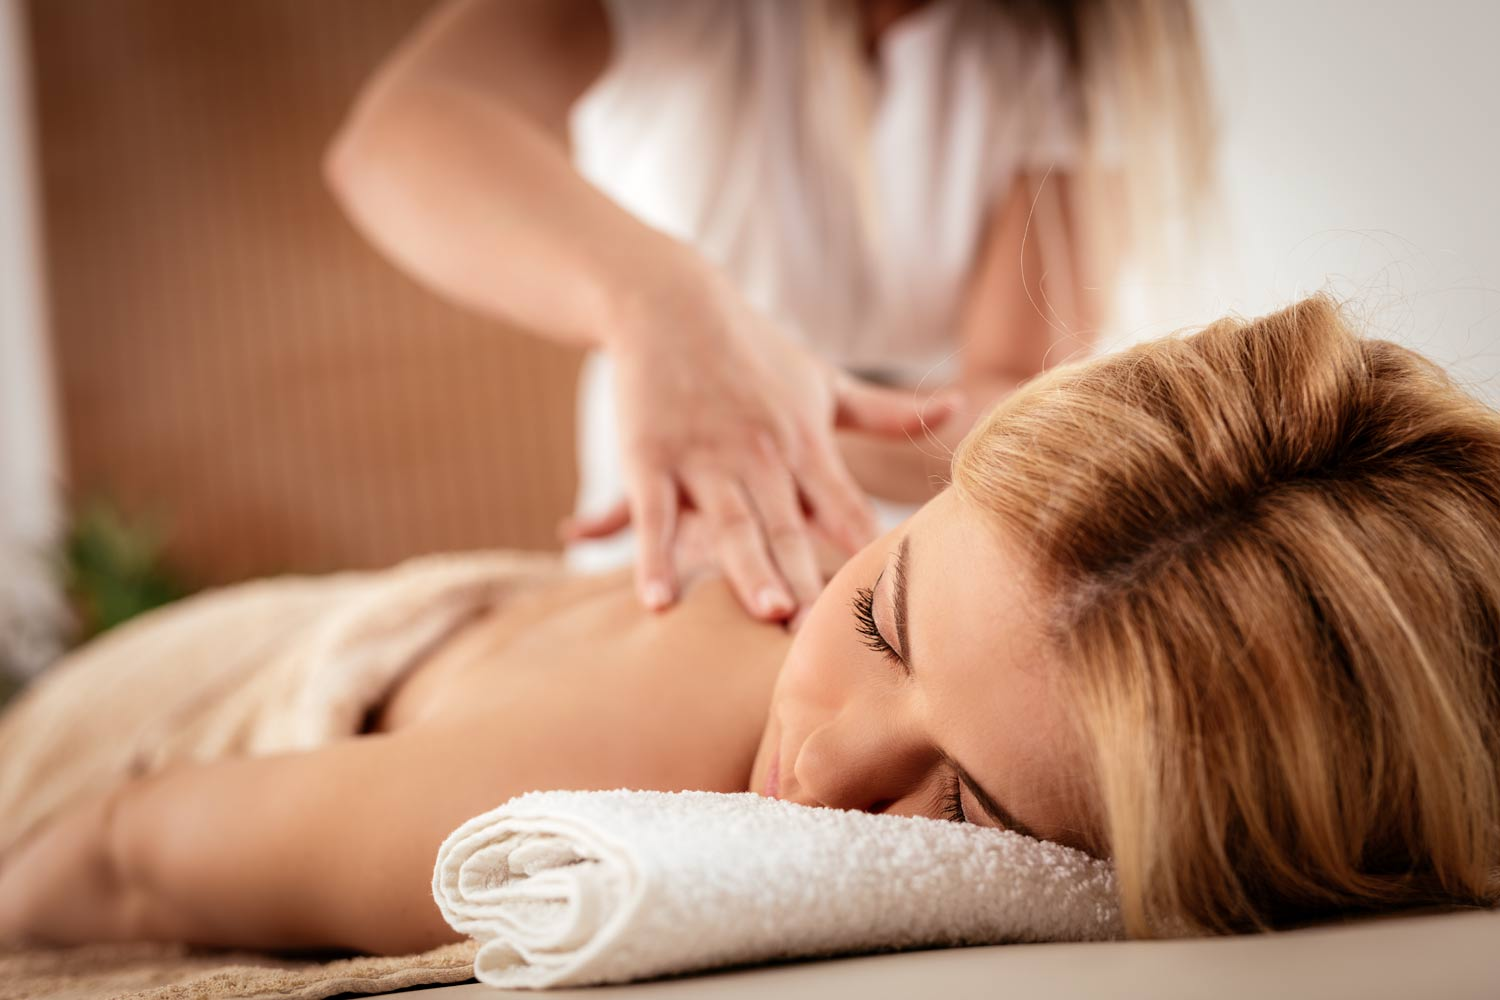 Therapeutic Massage being performed at Massage Fort Myers Spa